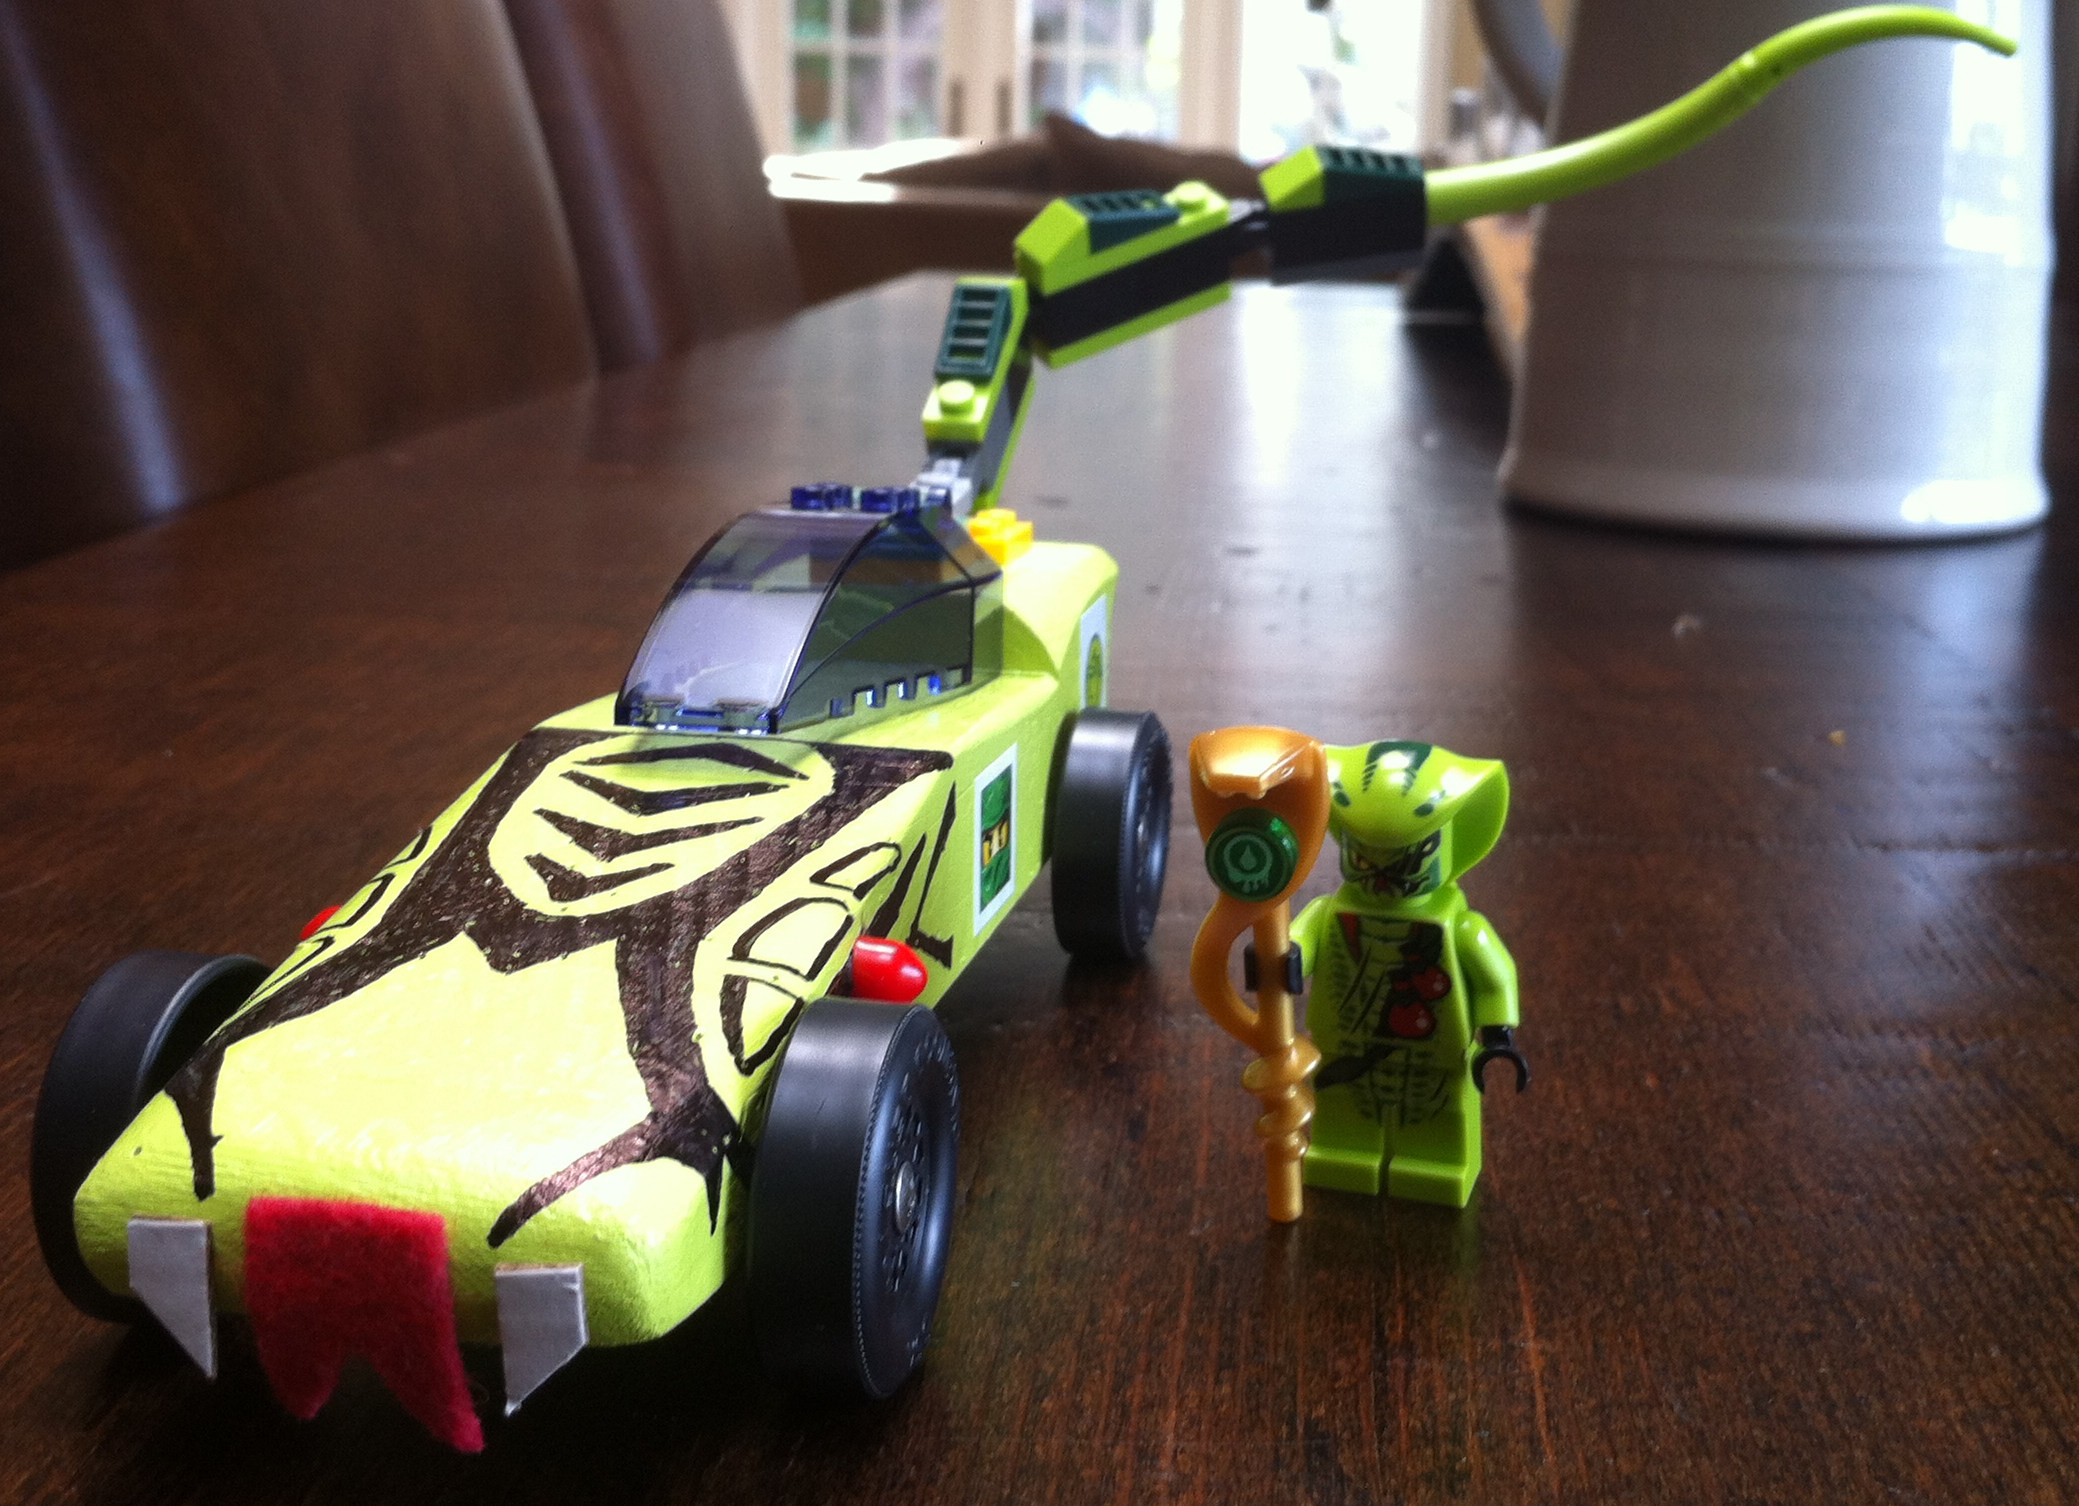 Pinewood Derby Car Inspired By Lego Ninjago 5 Steps With Pictures Instructables